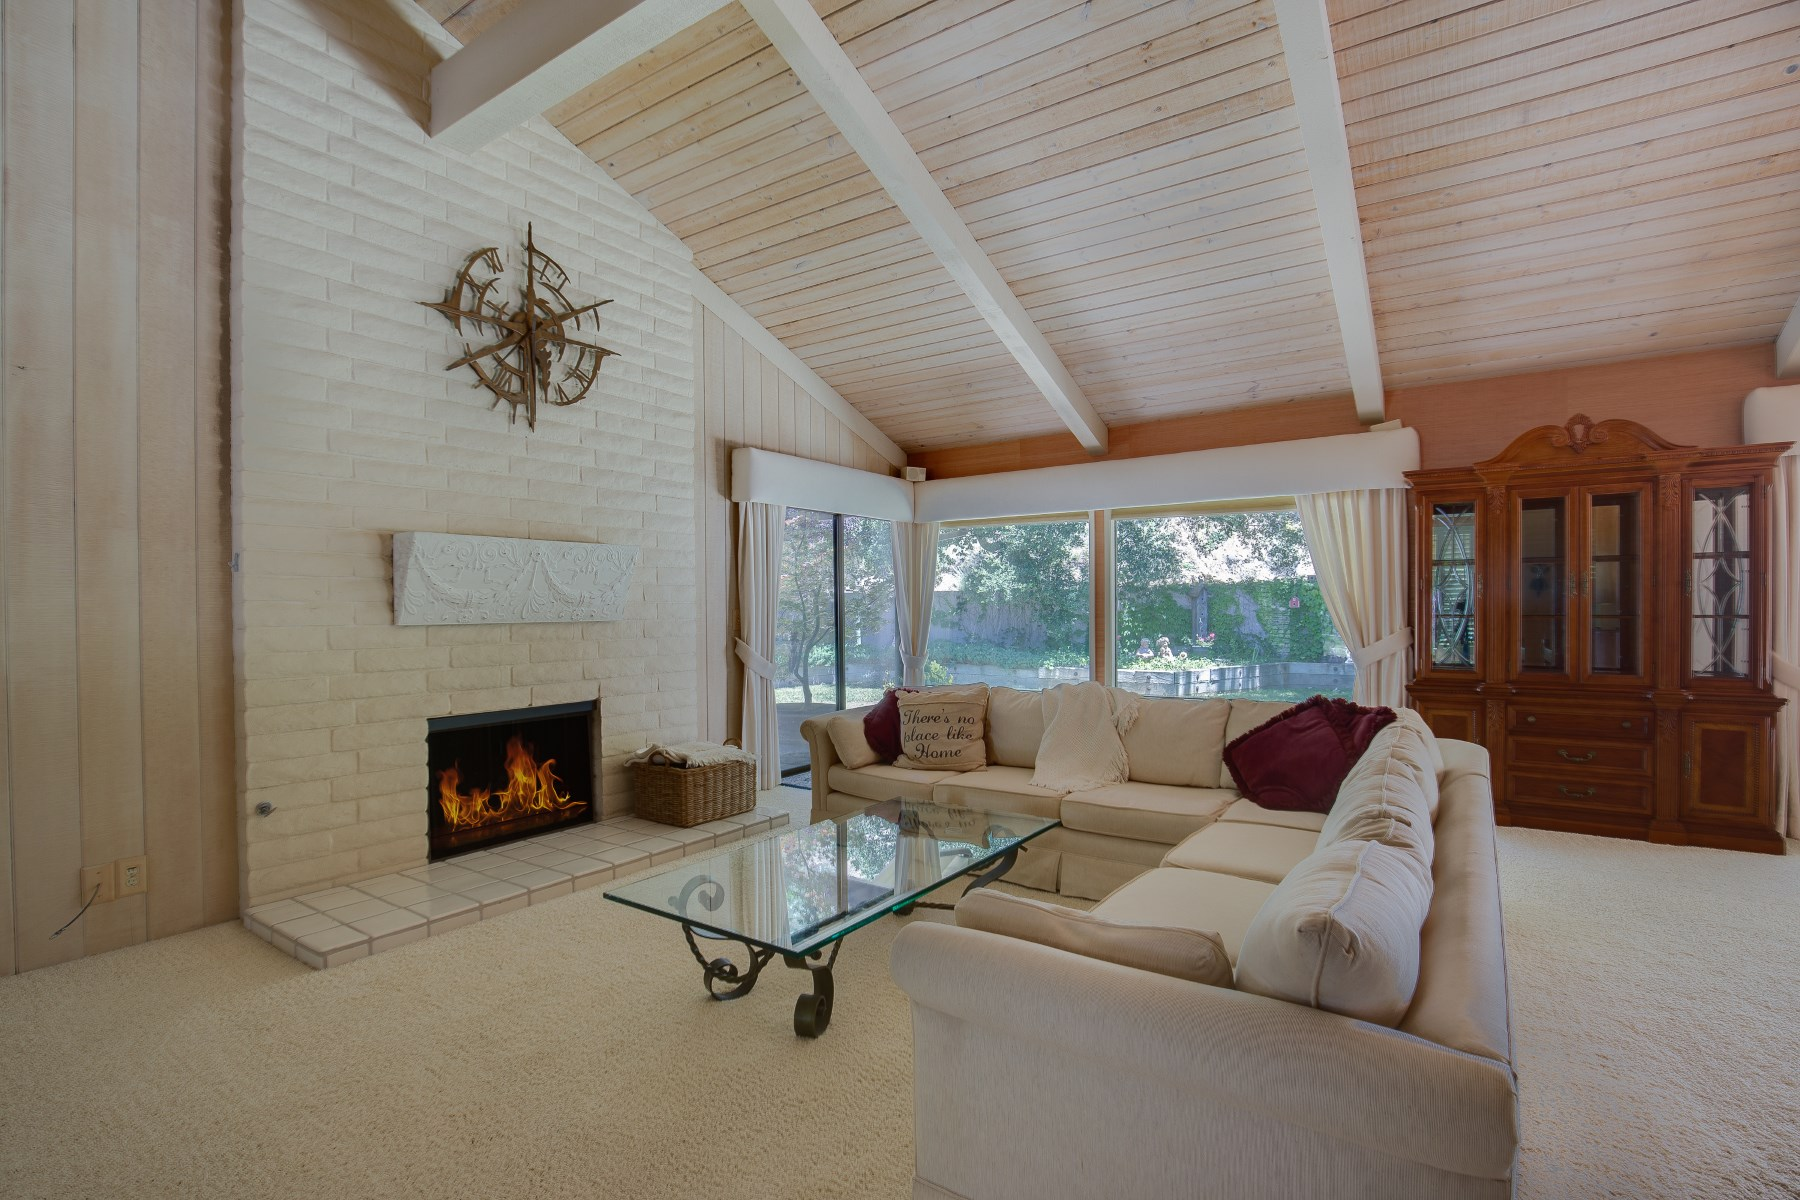 Single Family Home for Sale at Cozy Alisal Ranch 3124 Bowl Place, Solvang, California, 93463 United States